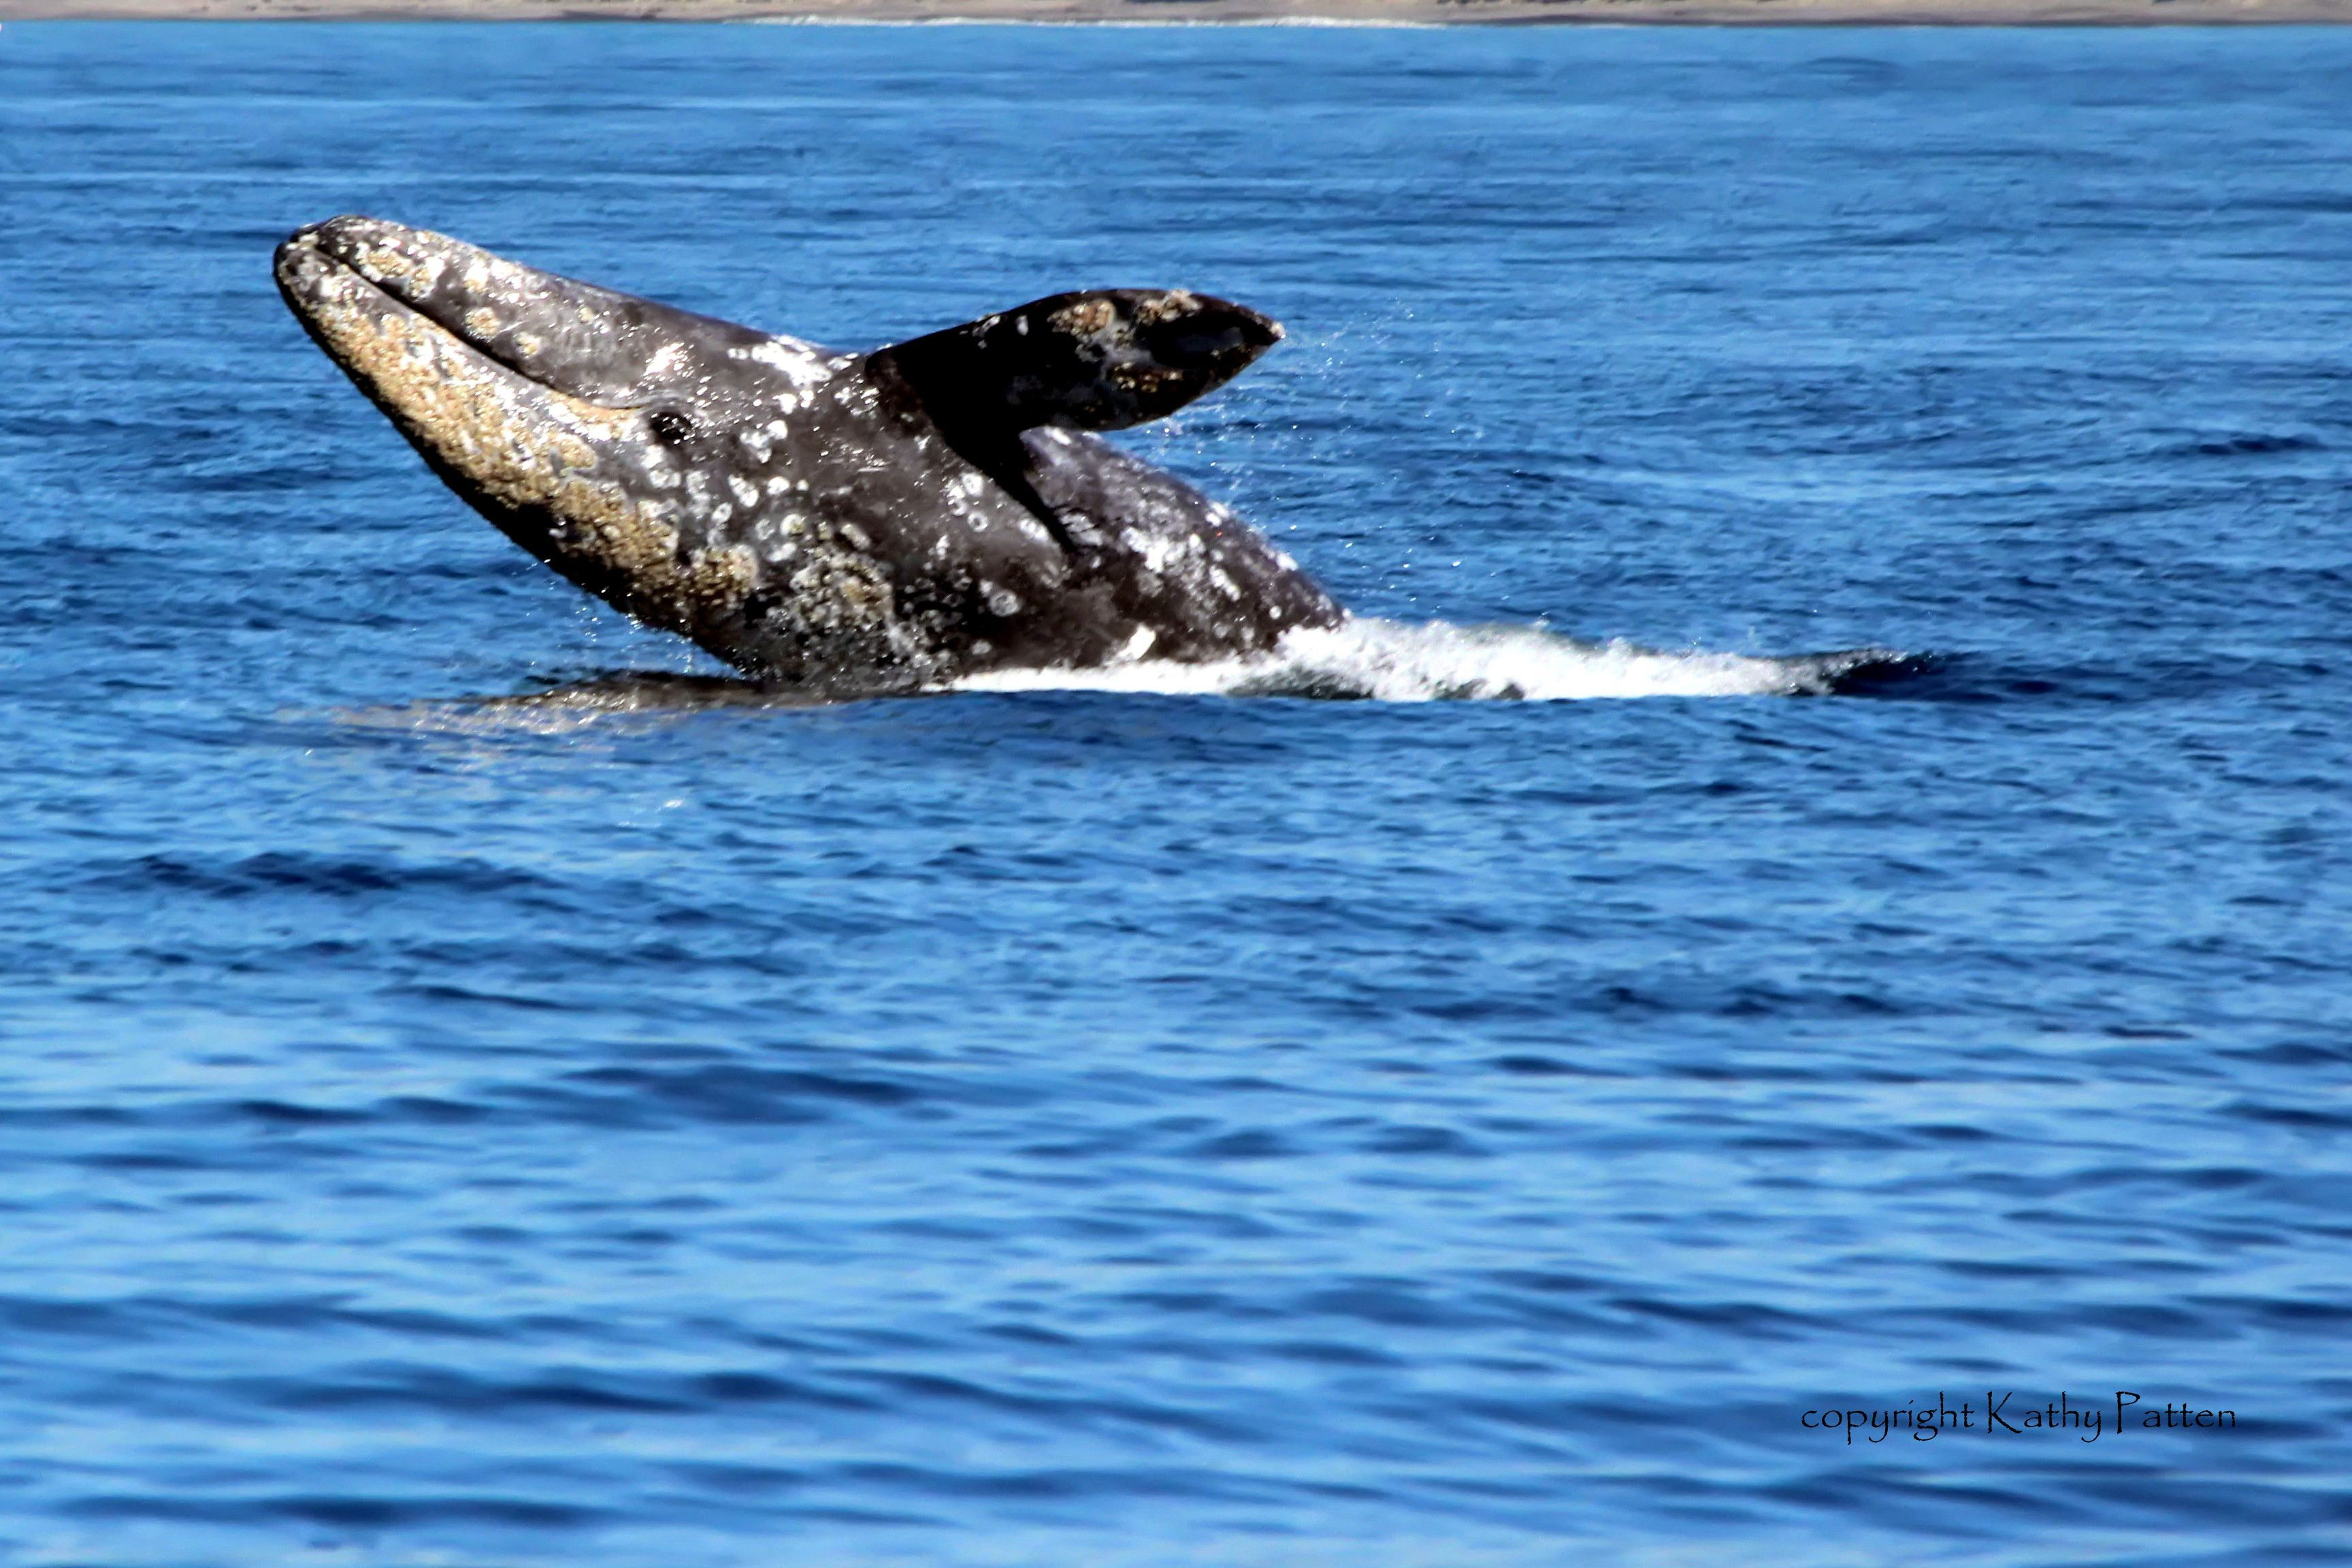 Dana point festival of the whales vacation trips whale